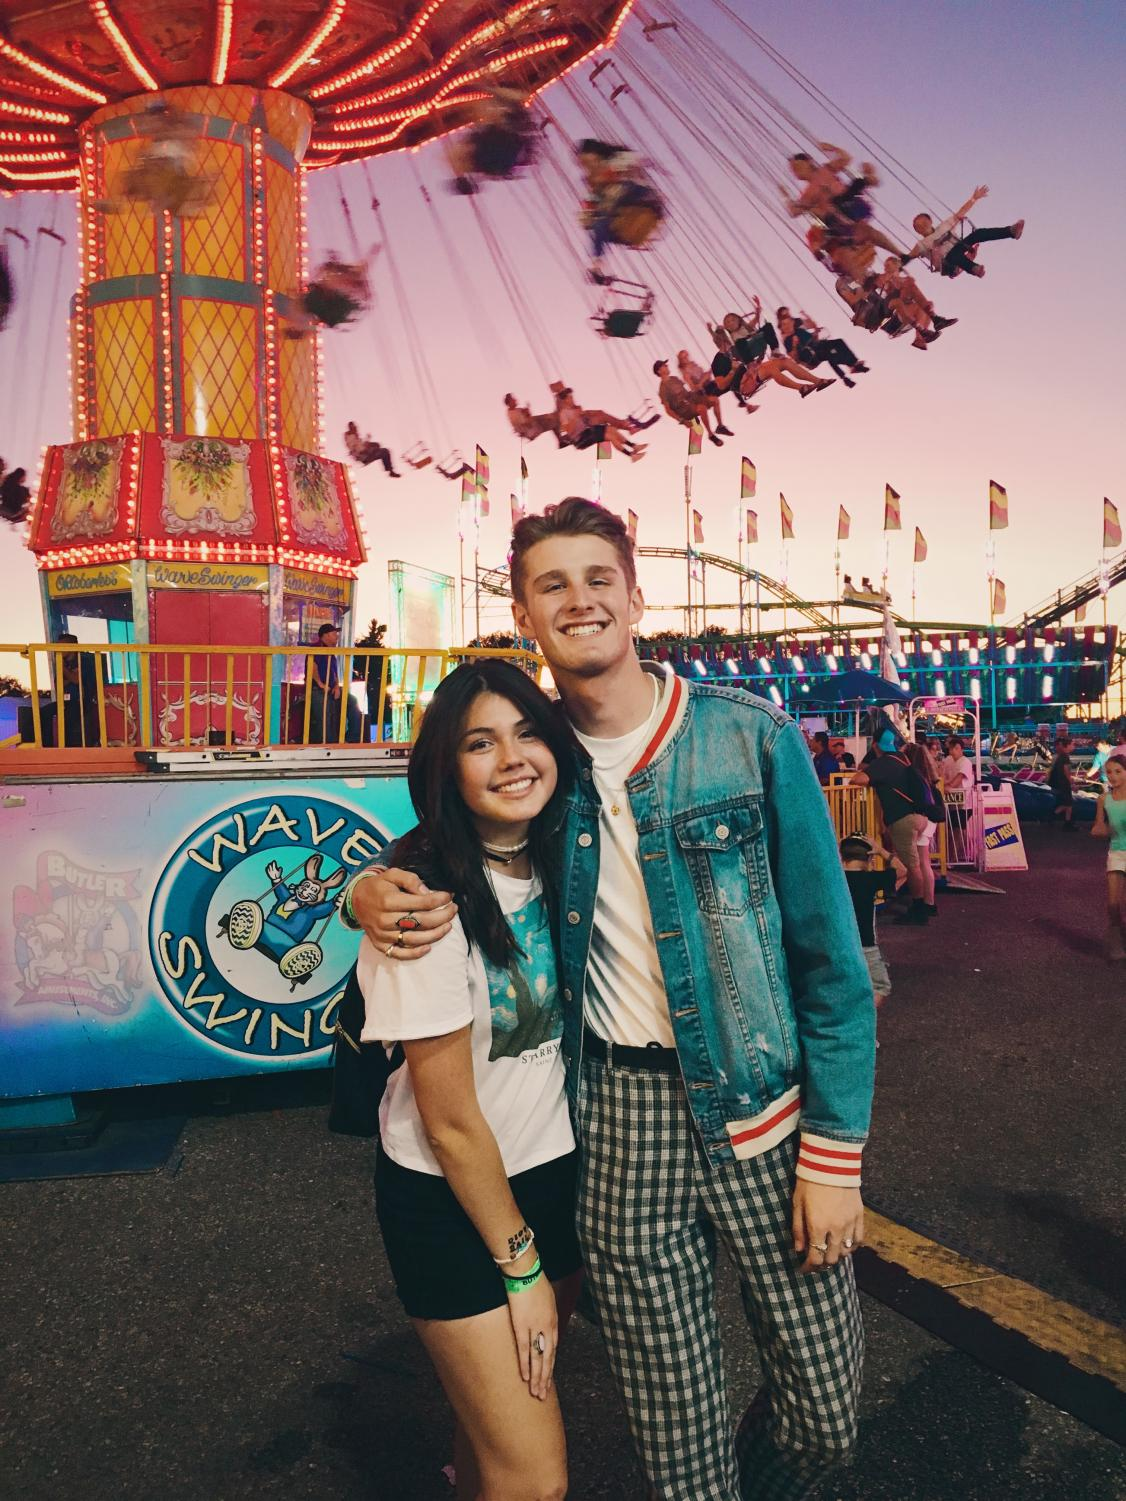 Hannah Castro and Boston Jensen at the fair.